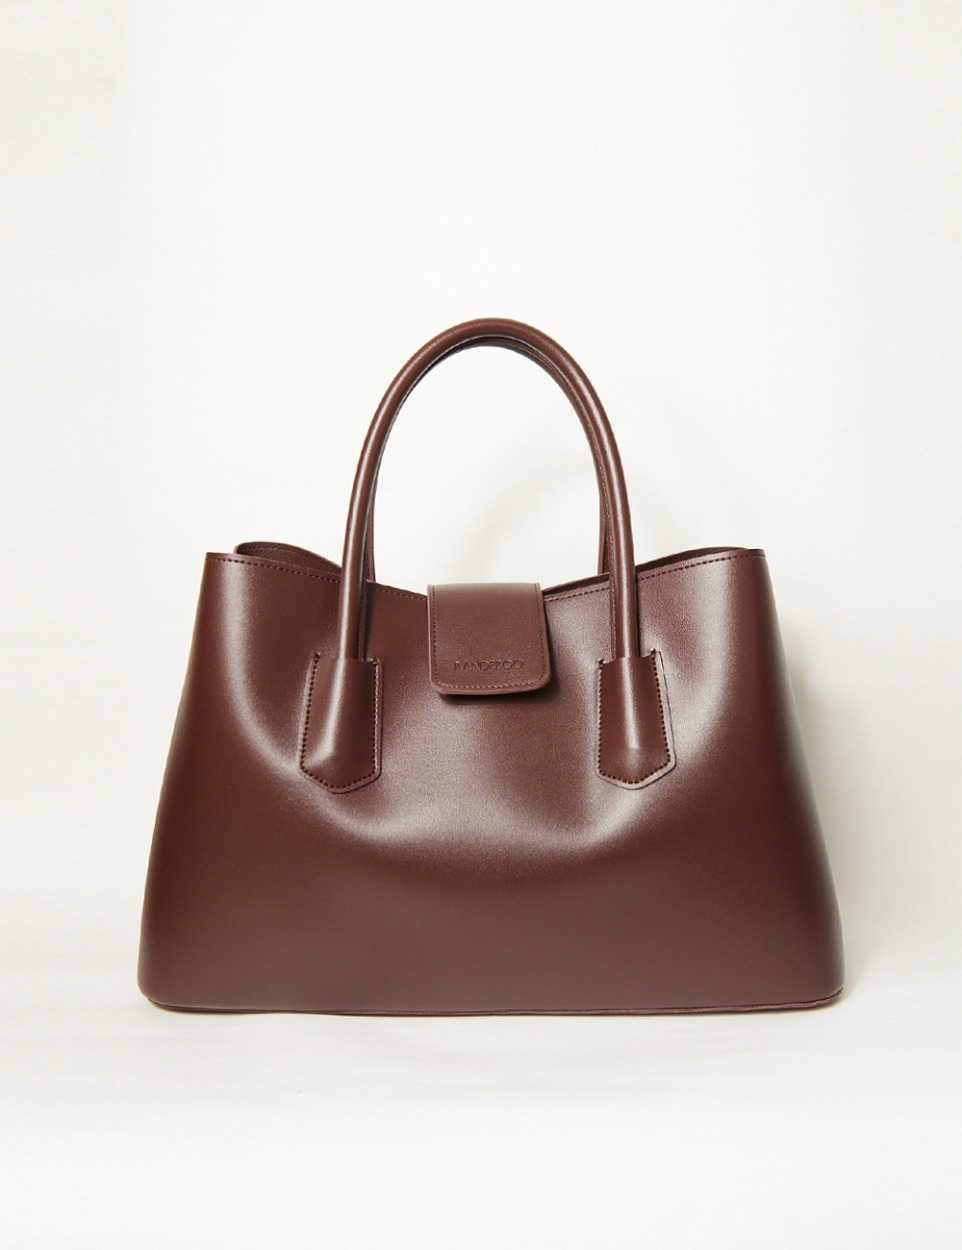 RB classic bag (dark brown)